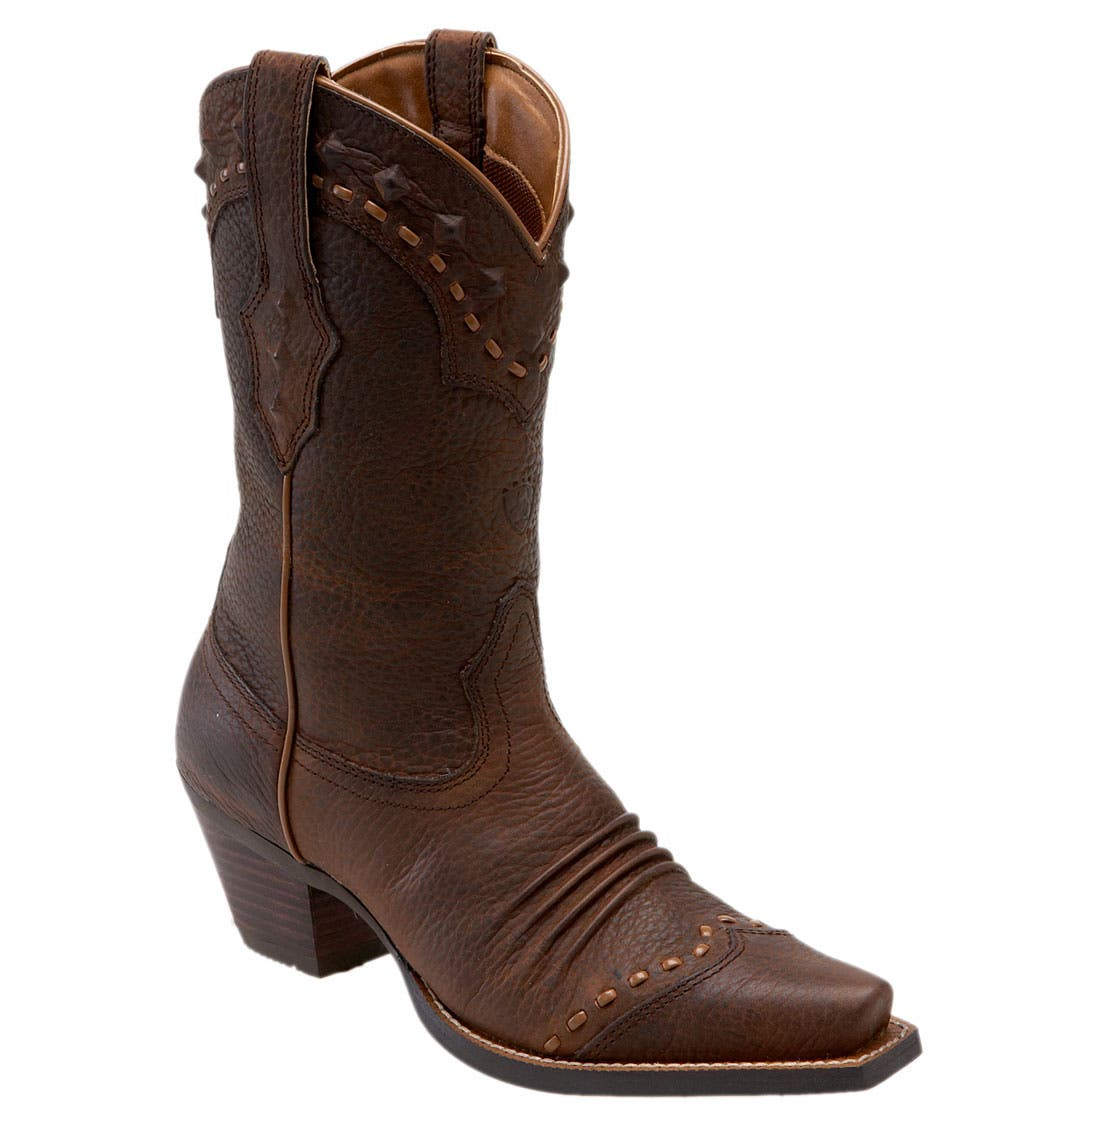 Alternate Image 1 Selected - Ariat 'Dixie' Boot